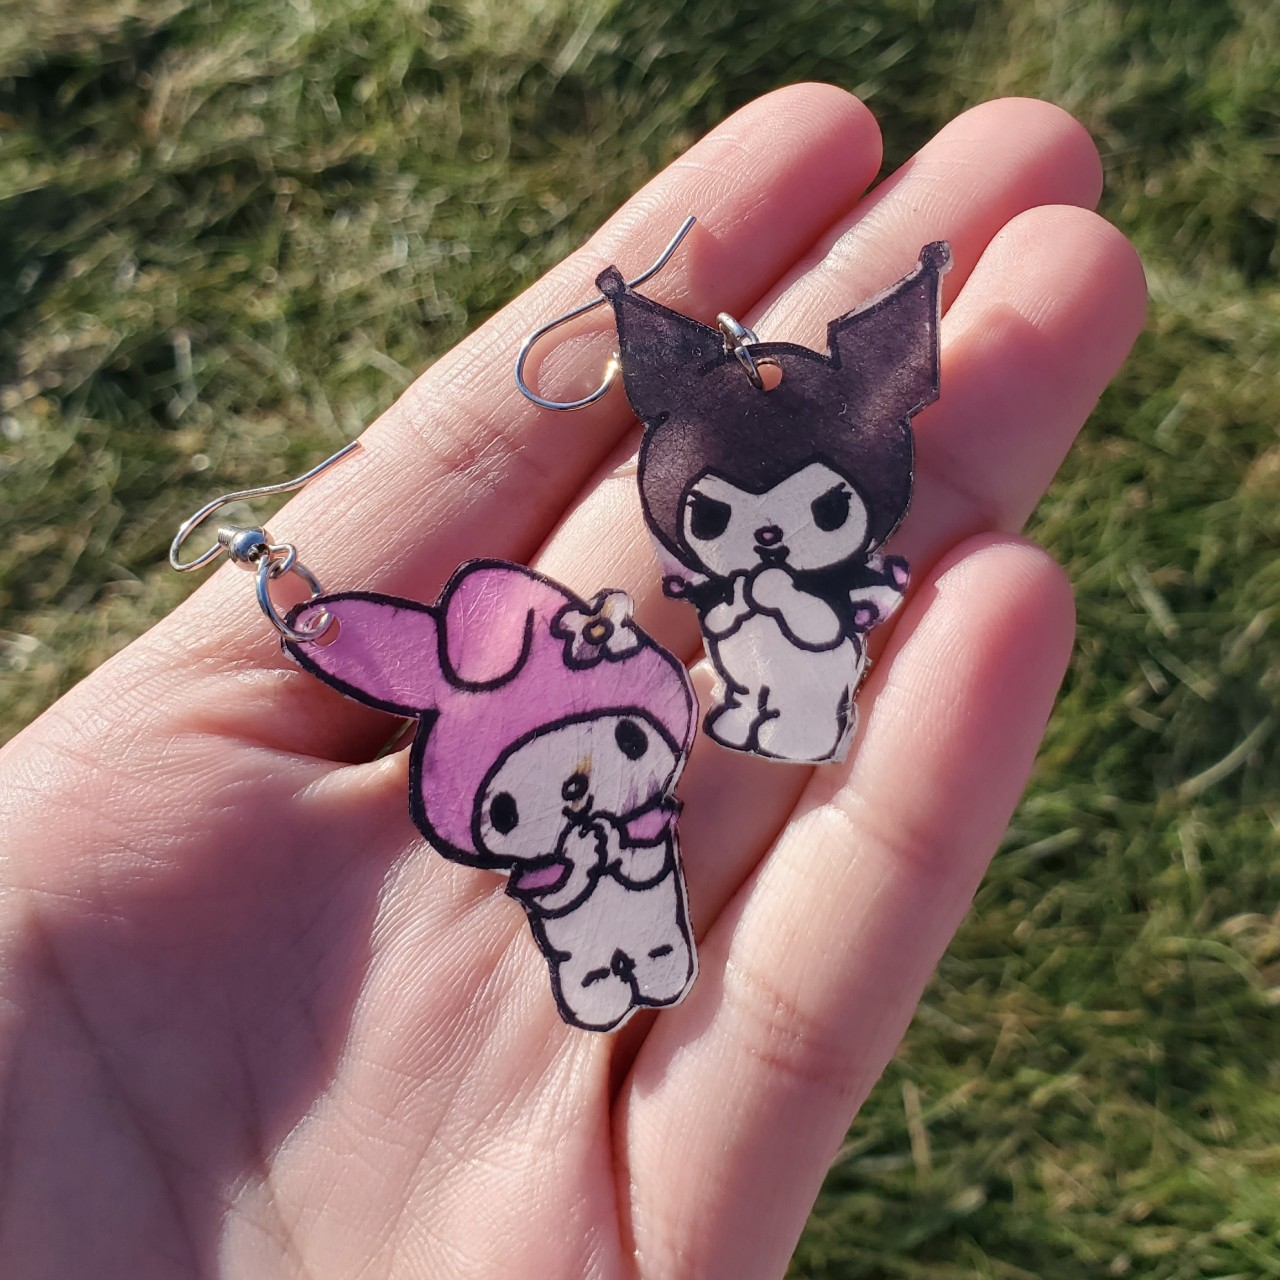 Product Image 1 - My Melody and Kuromi shrinky